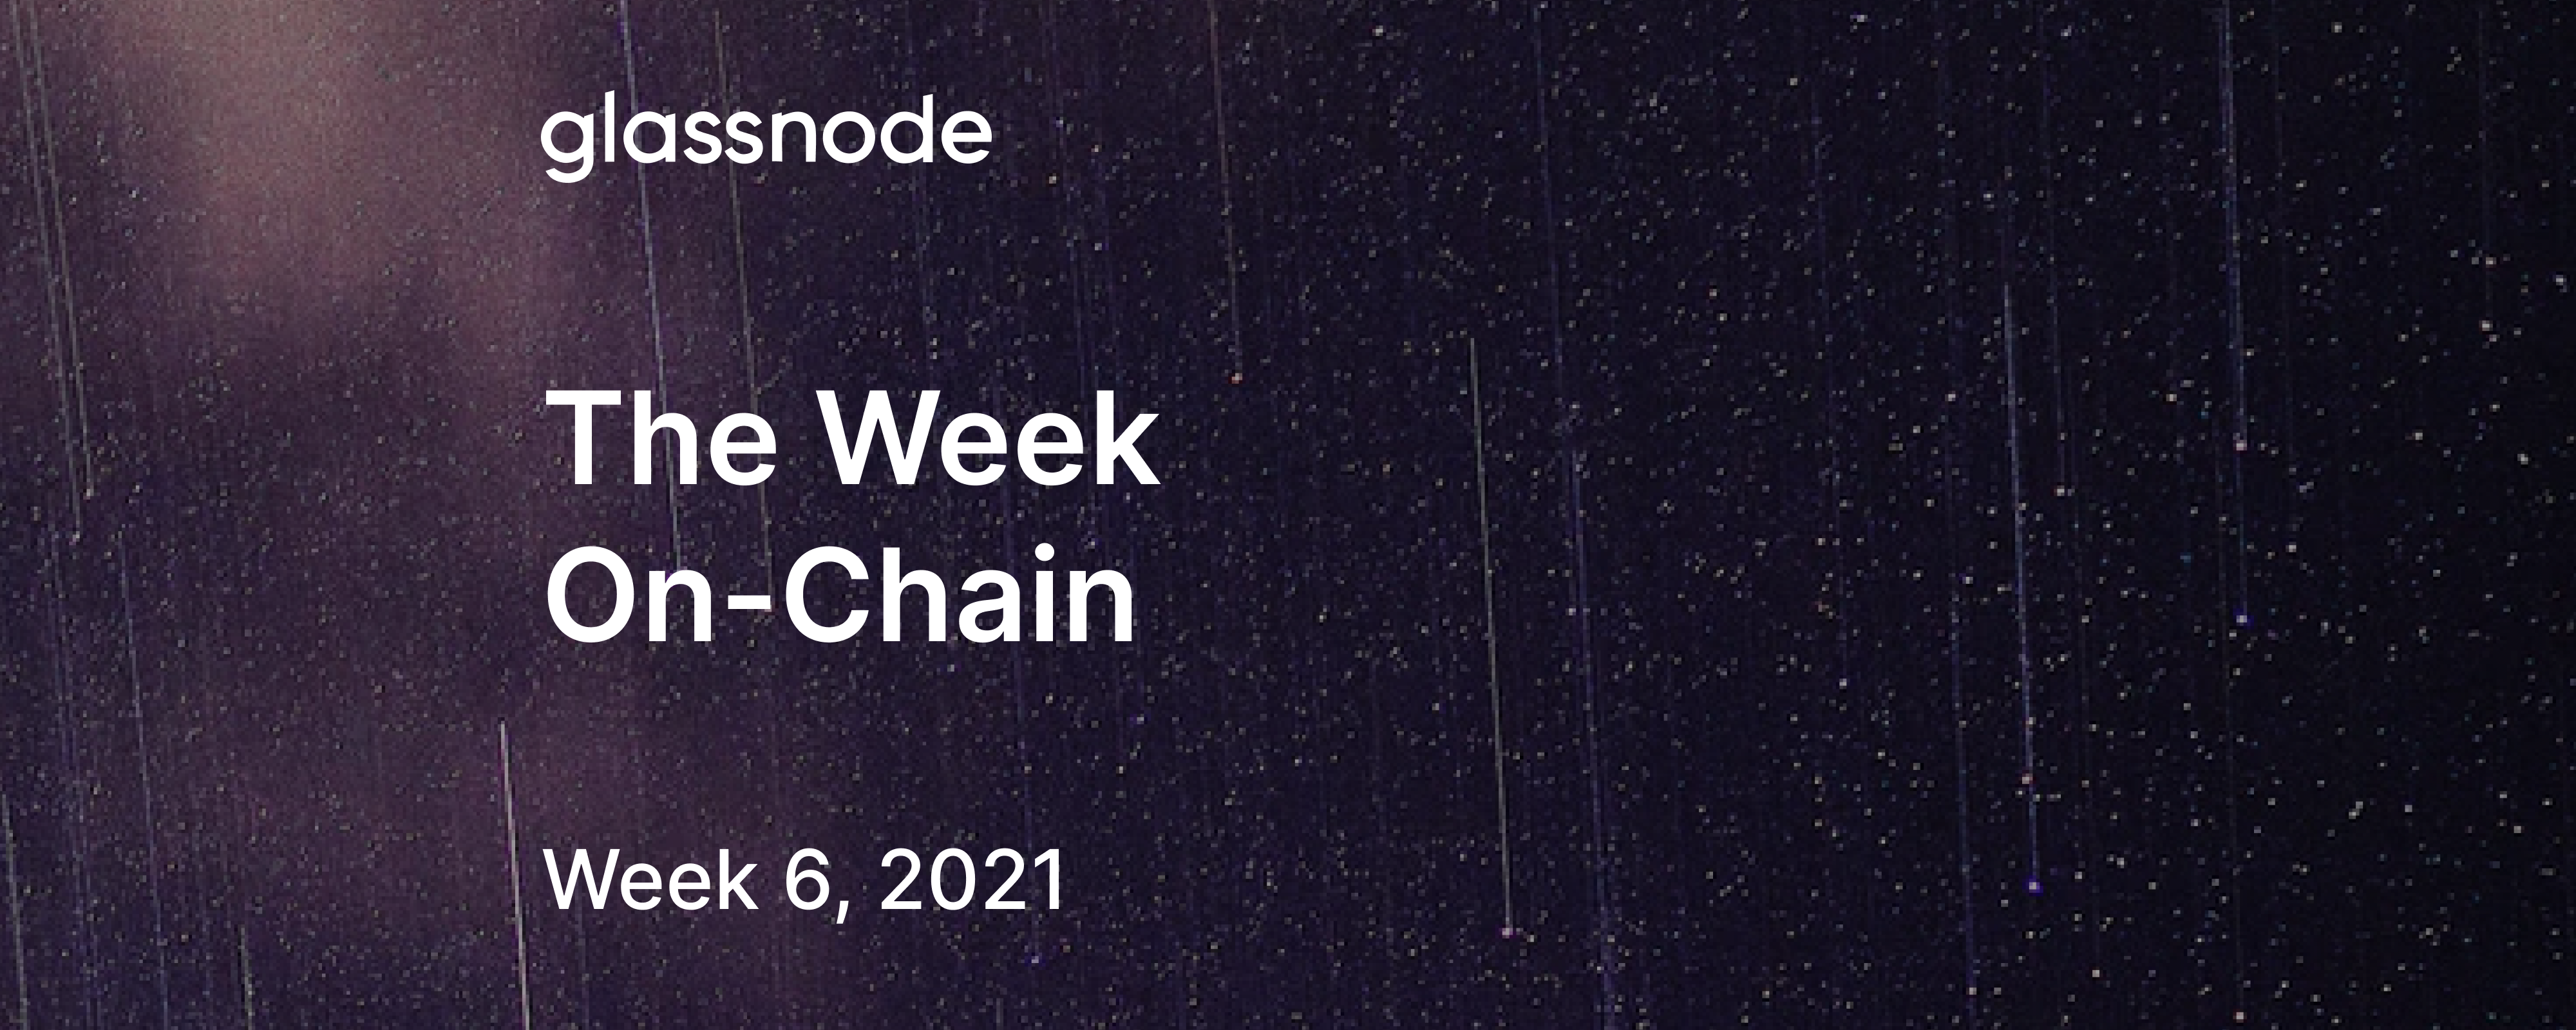 The Week On-Chain (Week 6, 2021)